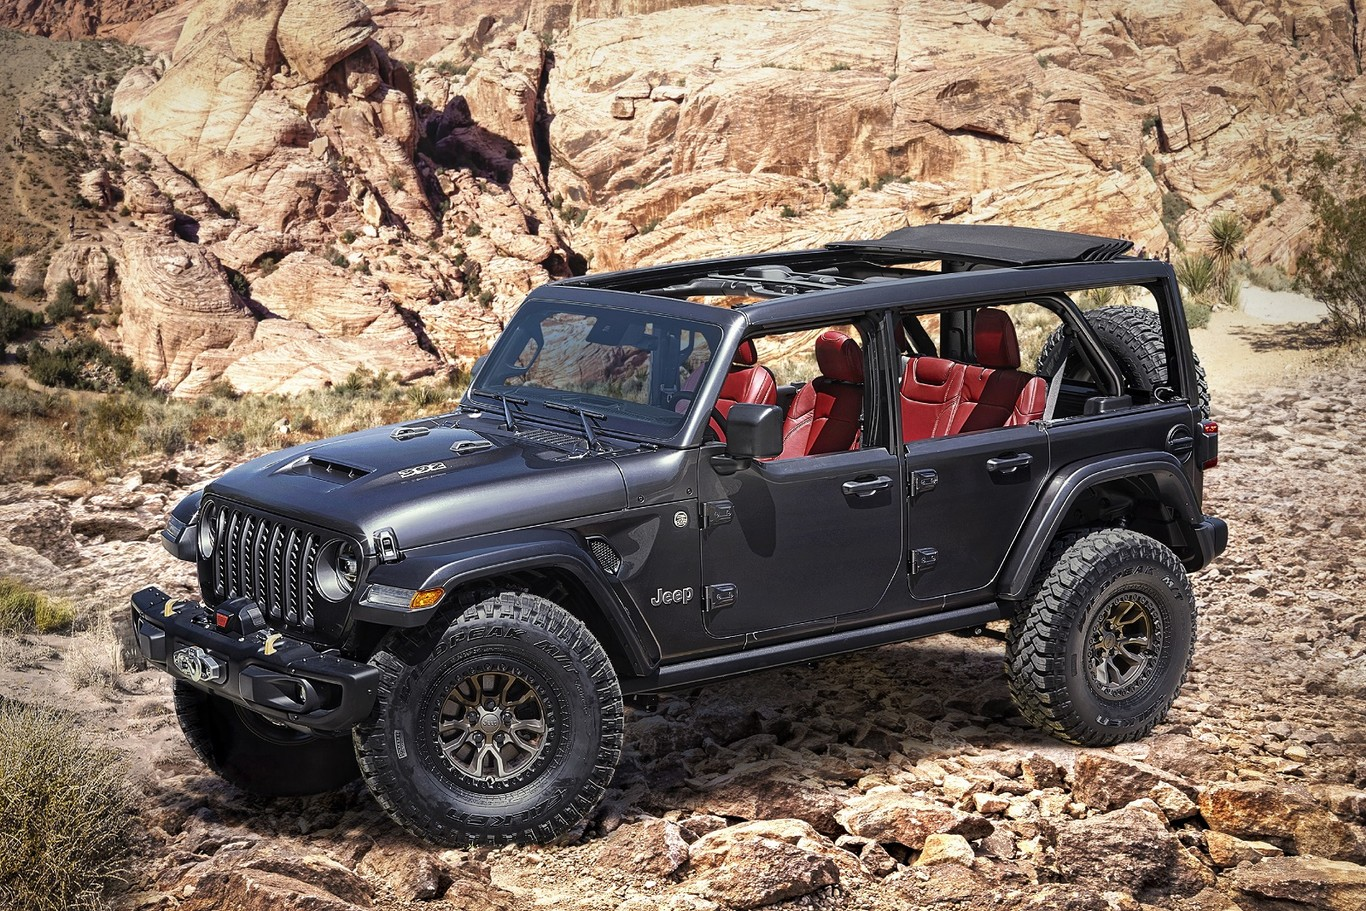 2021 Jeep Wrangler Rubicon Performance and New Engine